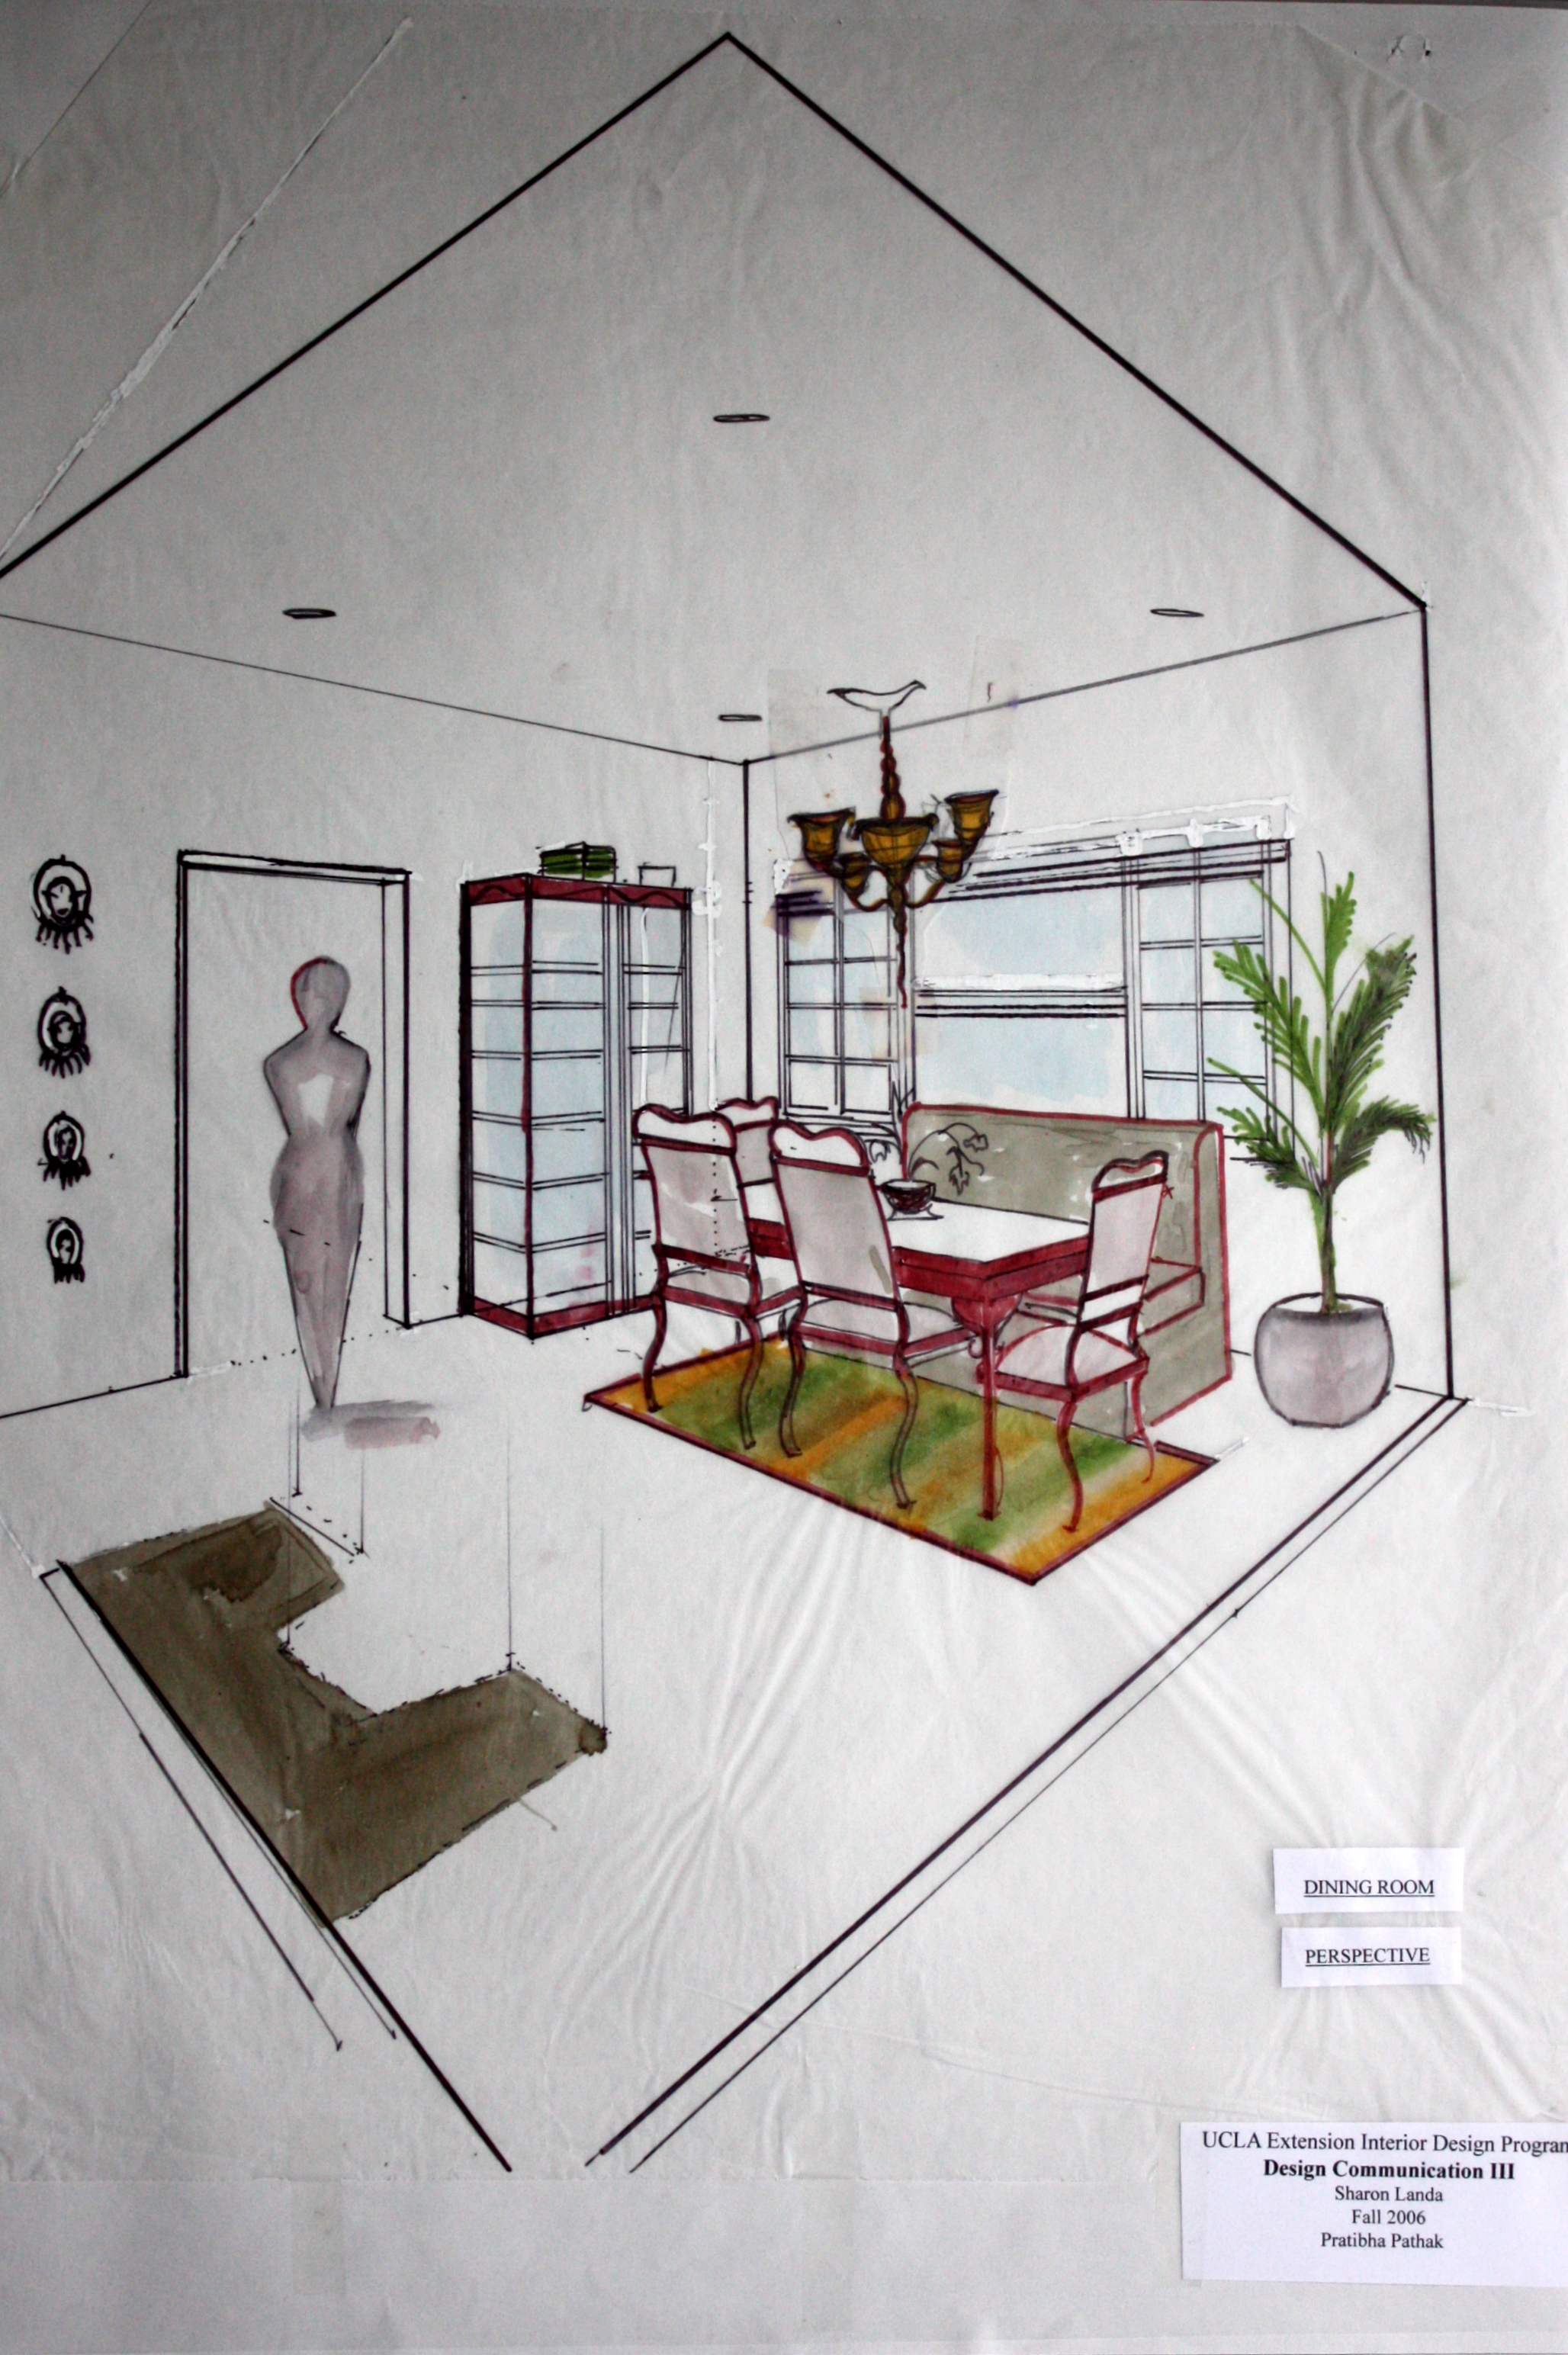 Superb Interior Design Projects Hand Drafting, Rendering, Perspective Drawing.